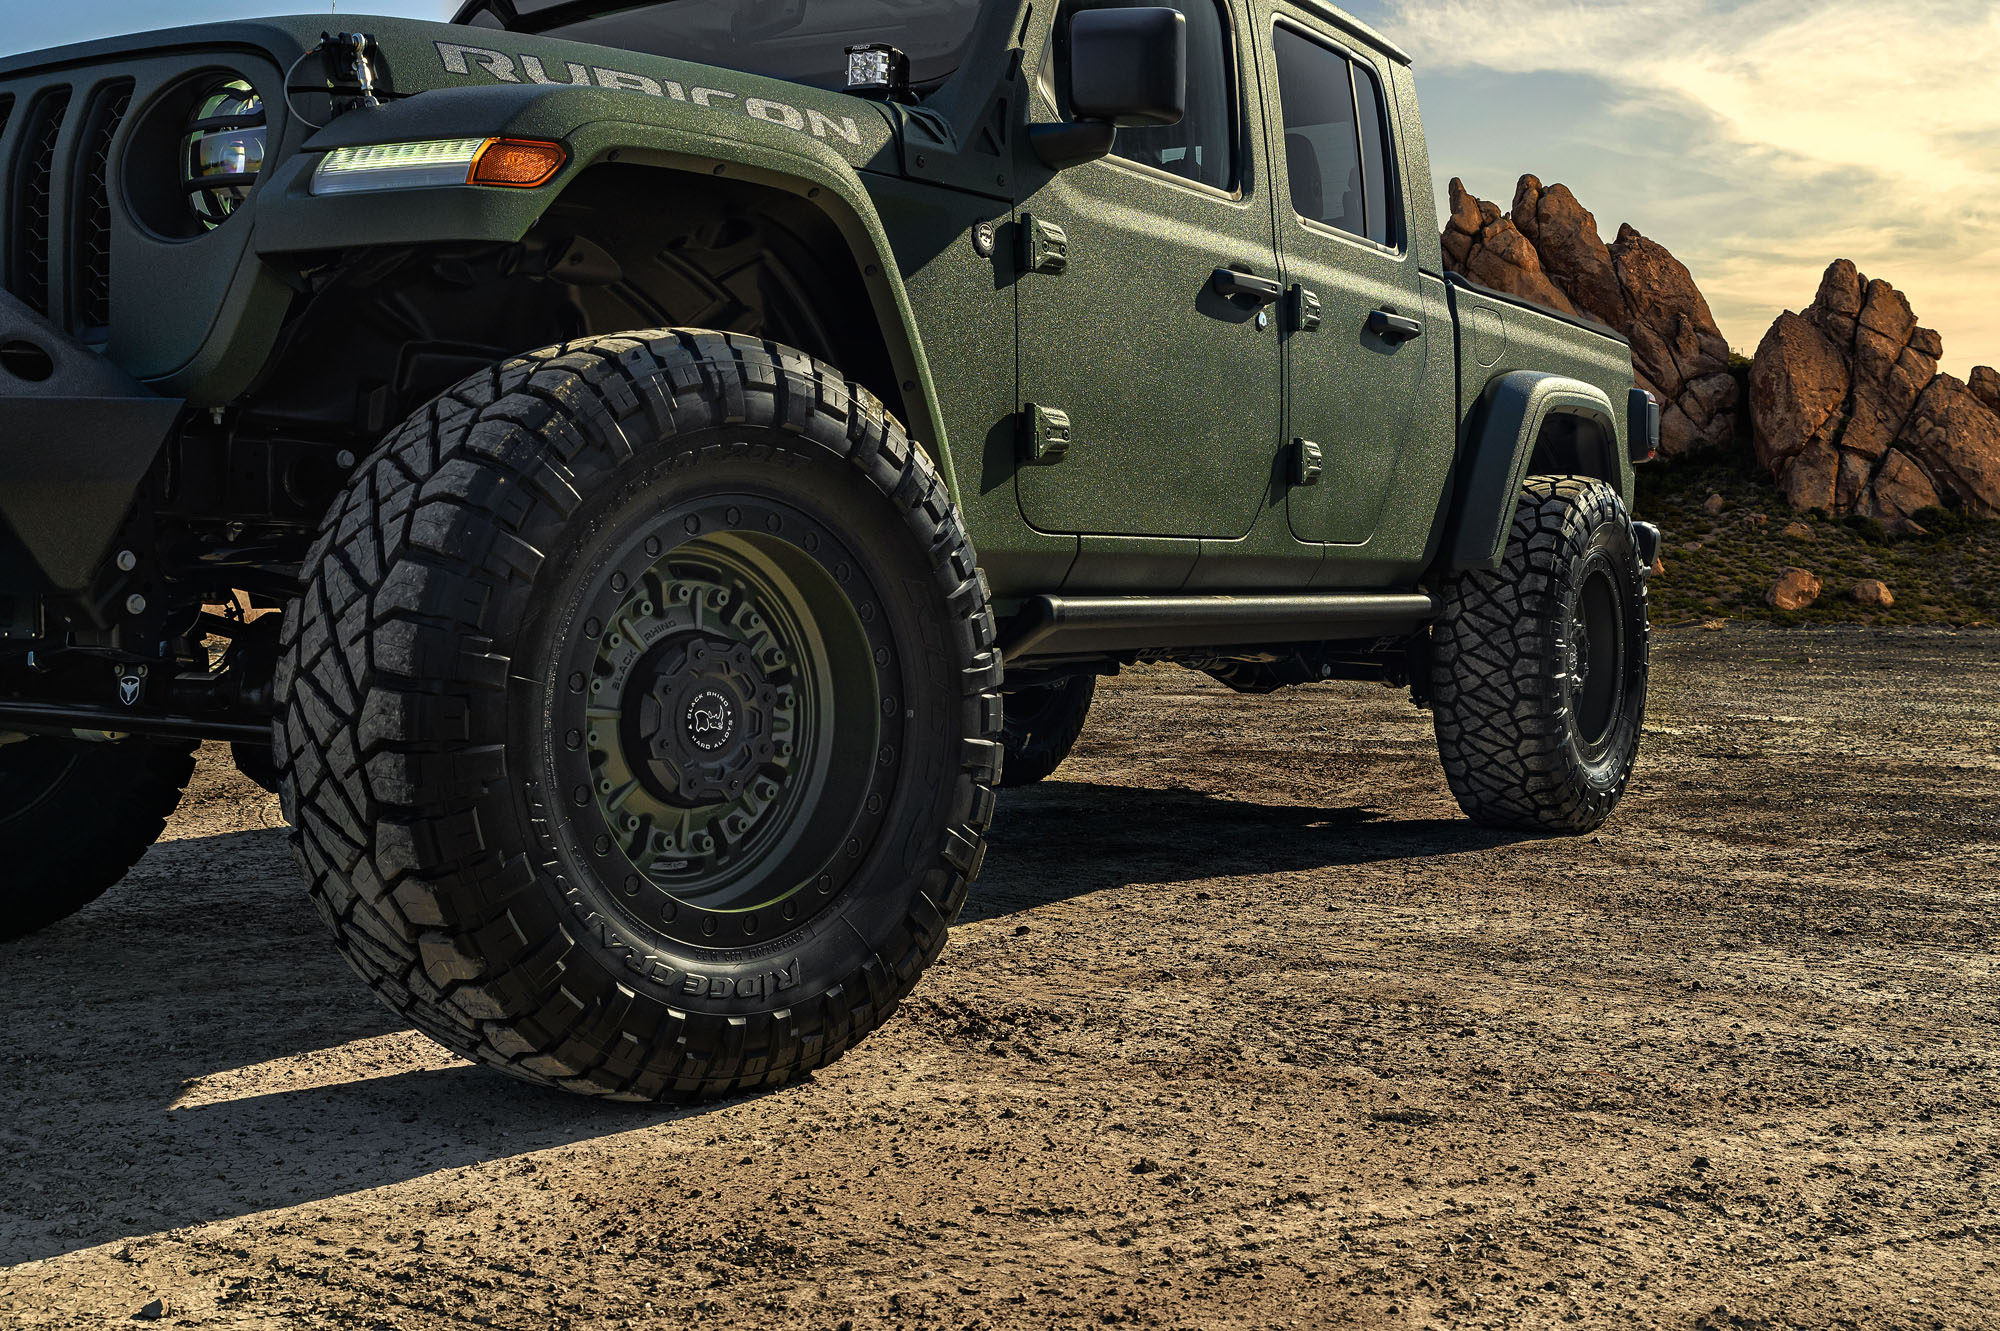 Jeep Gladiator Wheels Custom Rim And Tire Packages